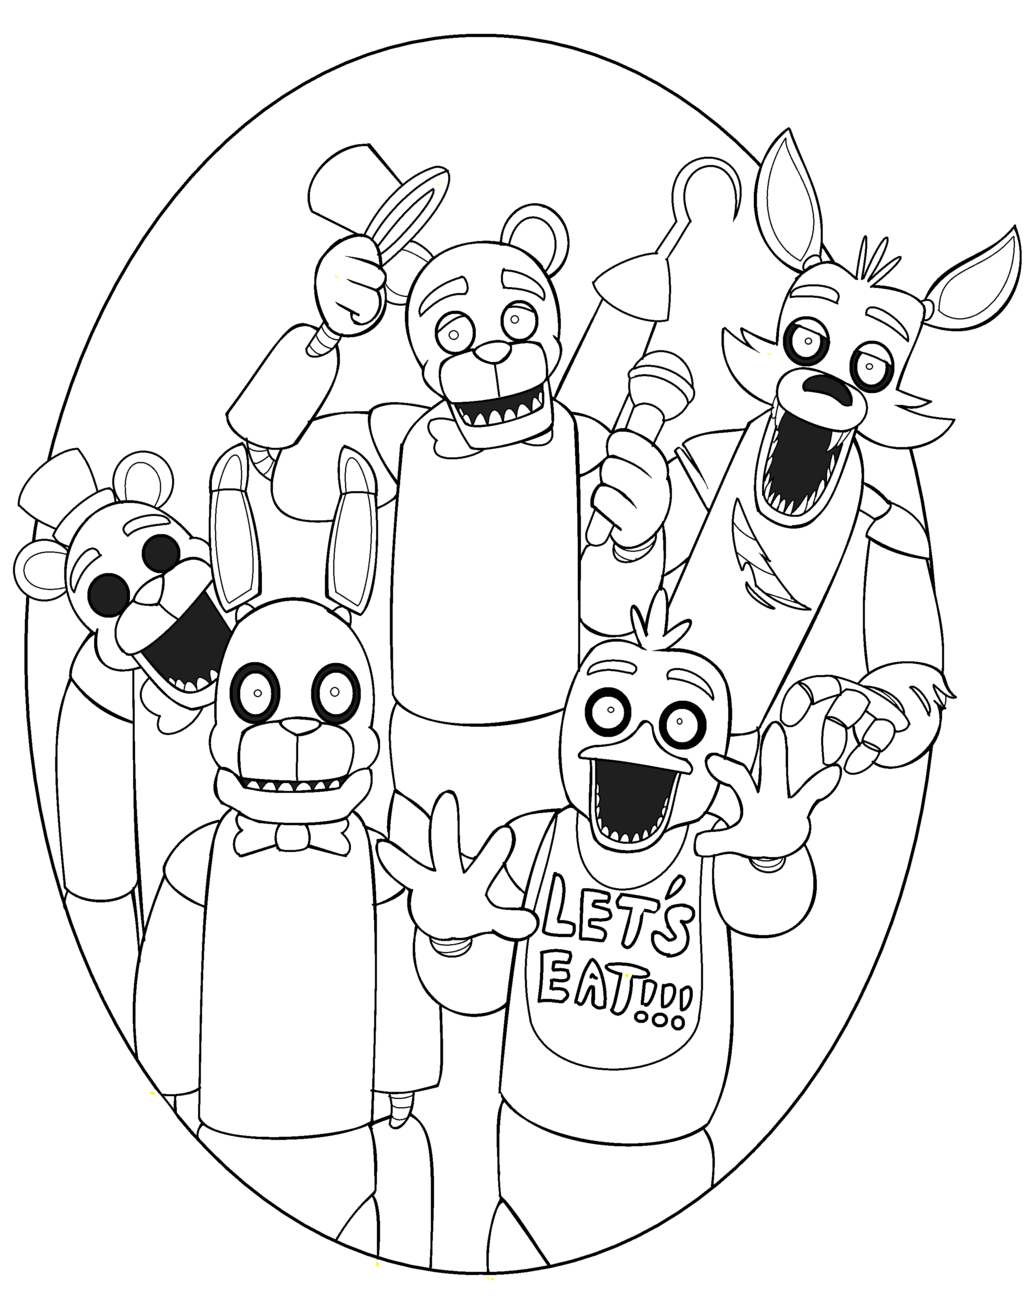 Amazing Idea Fnaf Coloring Pages Printable Five Nights At